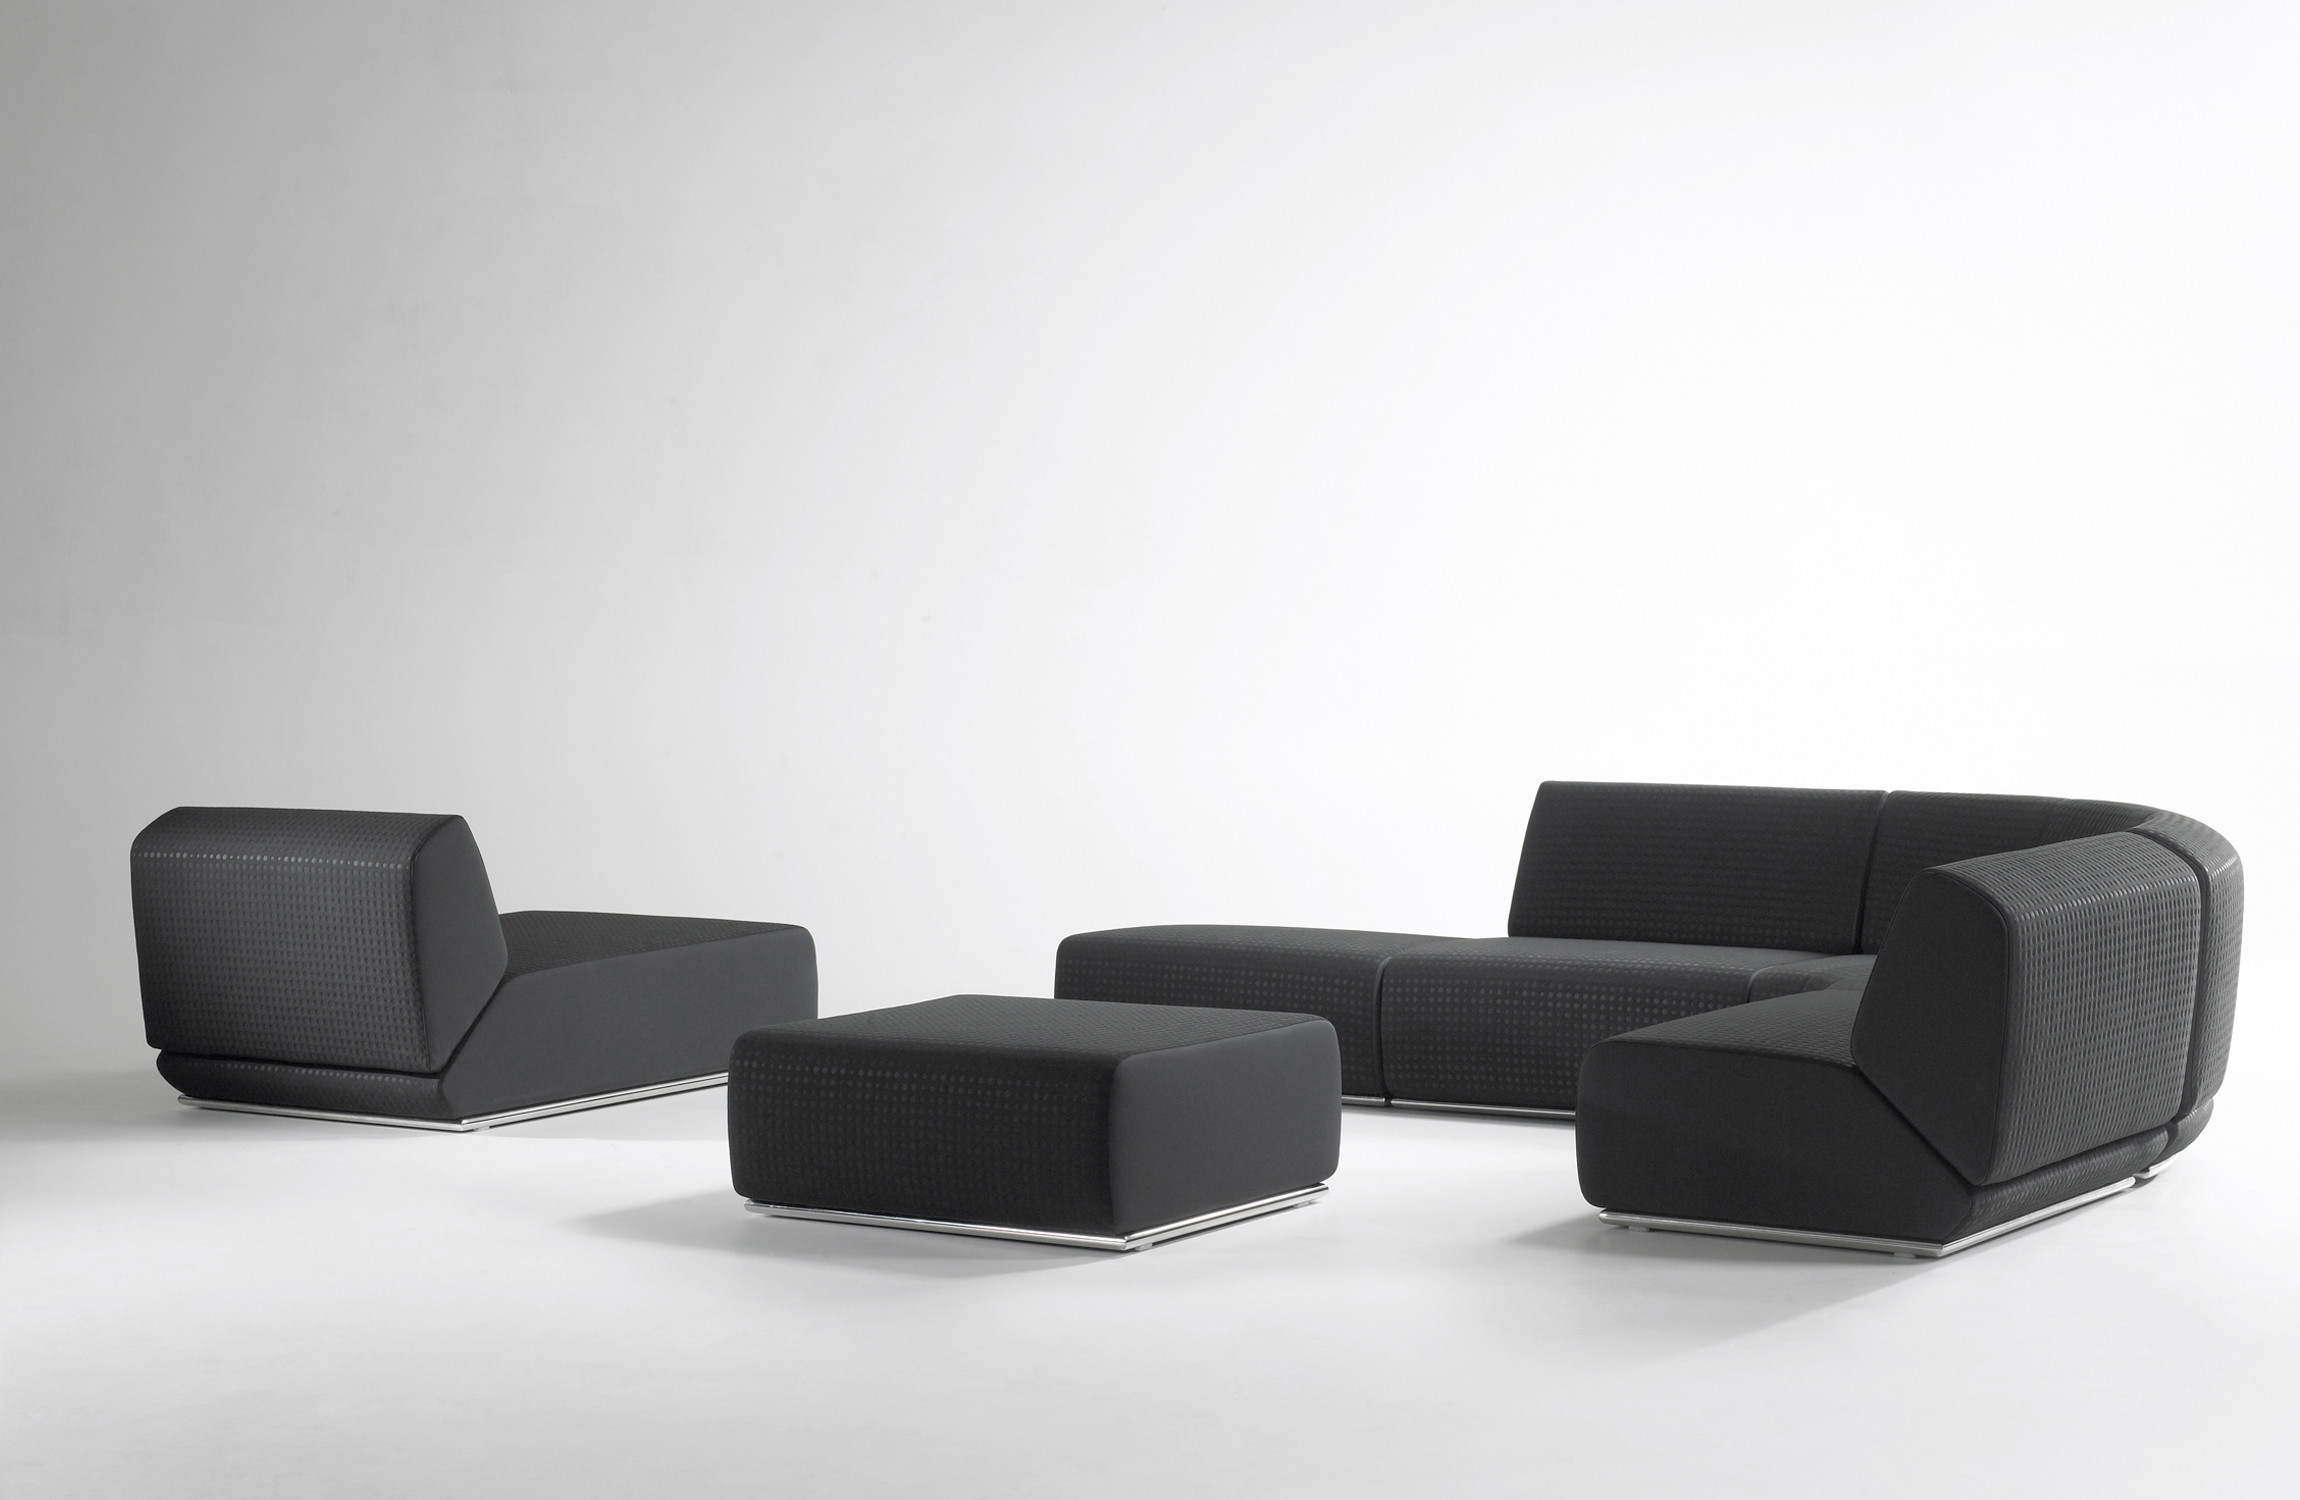 Manhattan Soft Seating Furniture